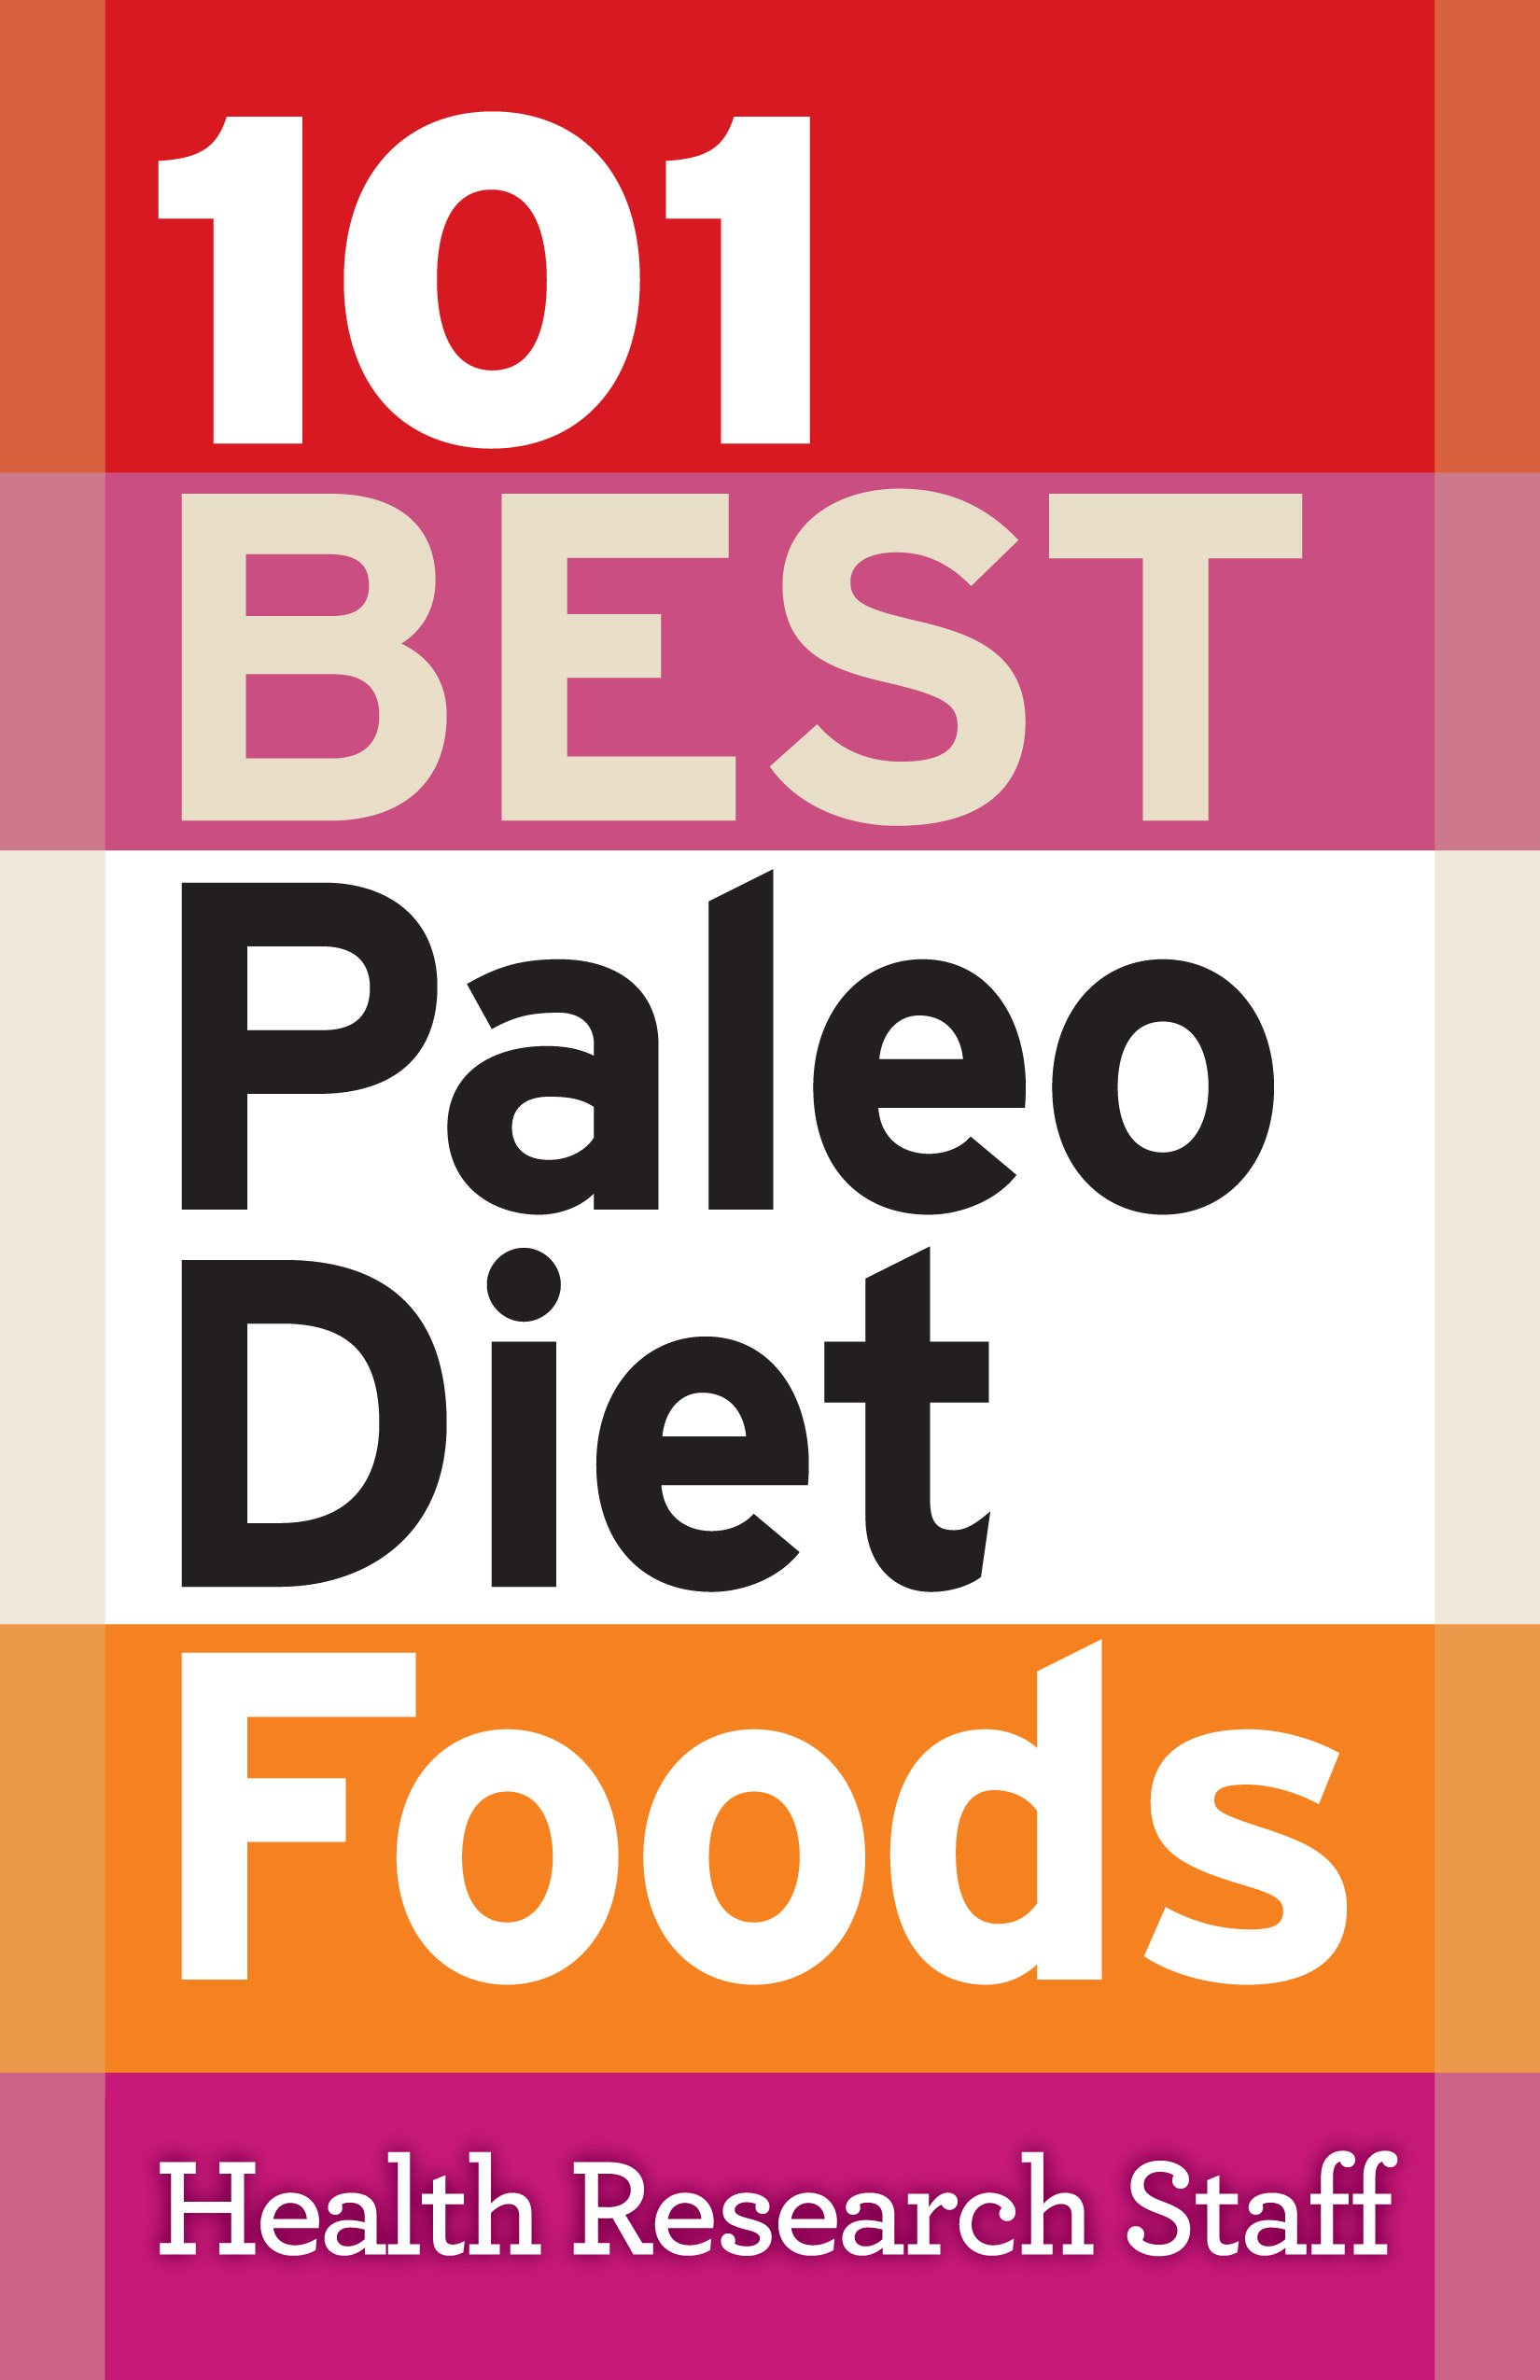 101 Best Paleo Diet Foods By: Health Research Staff